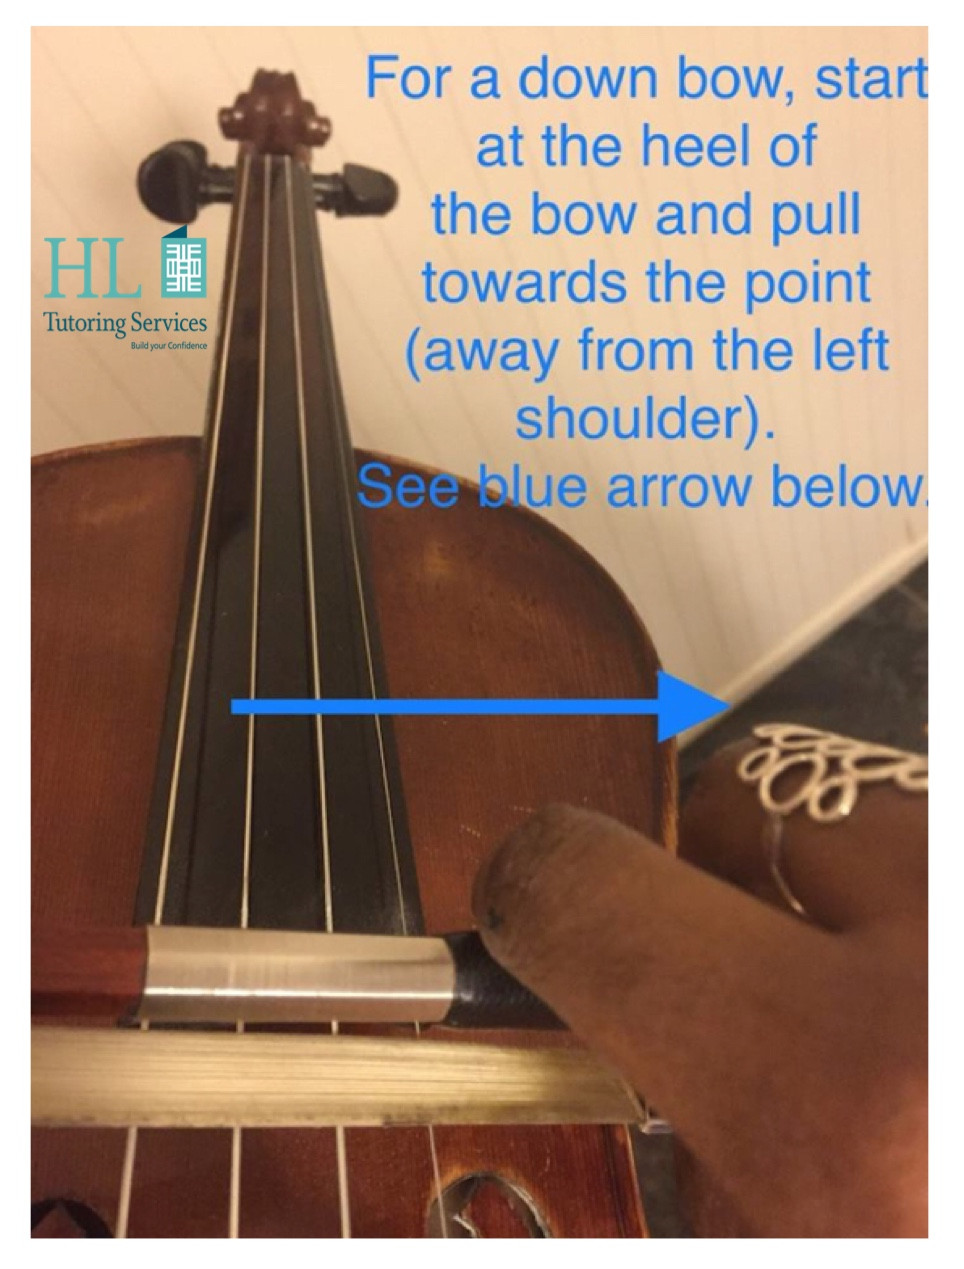 Down bow instructions and diagram